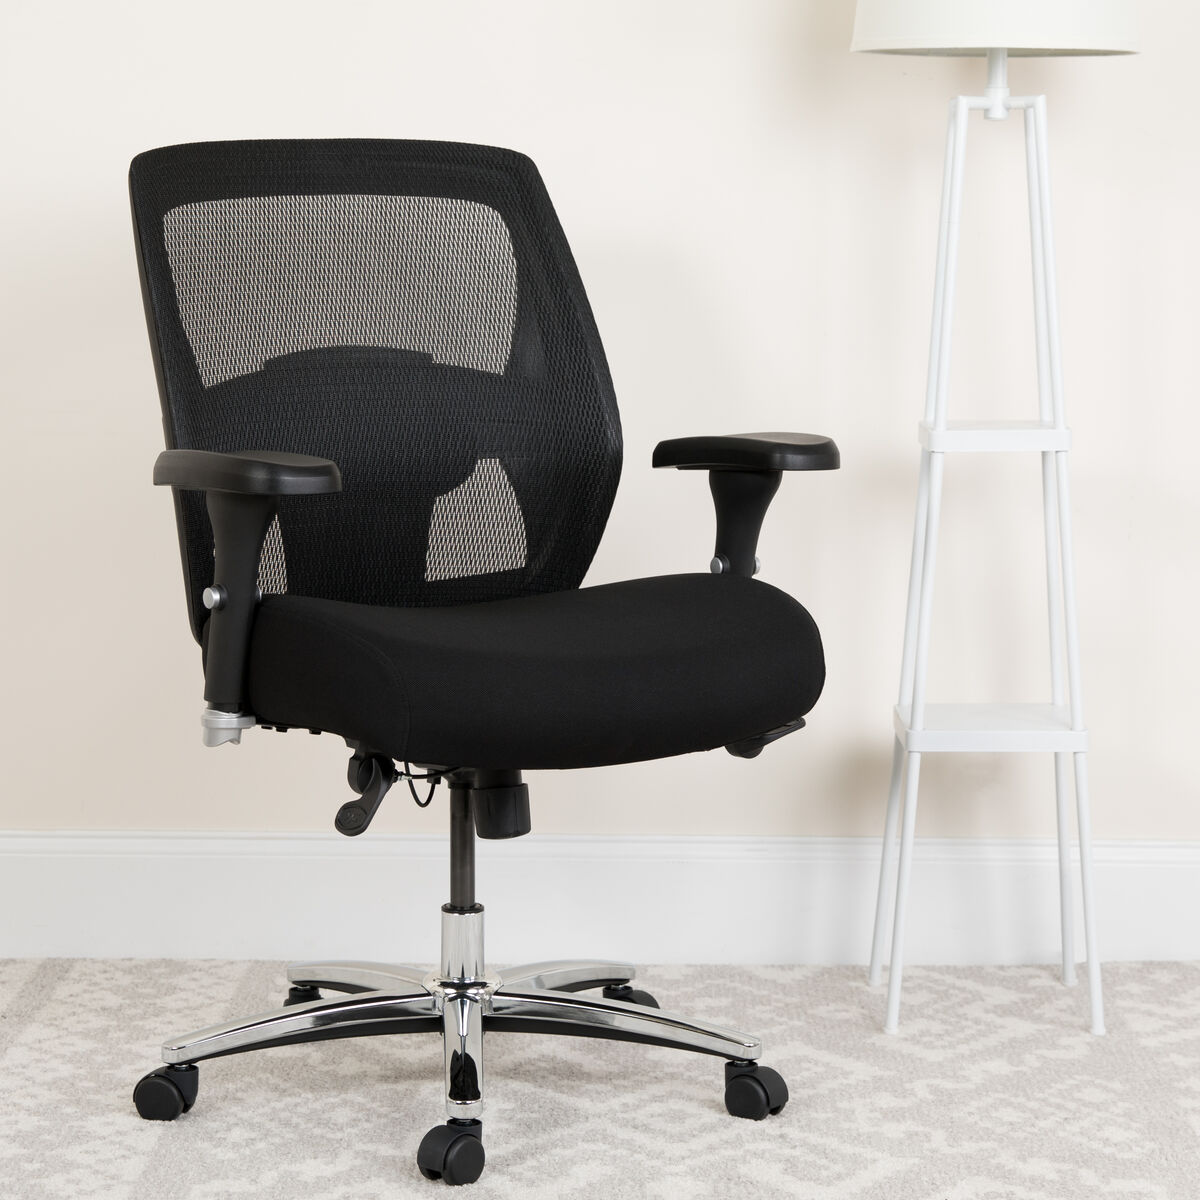 Peachy Hercules Series 24 7 Intensive Use Big Tall 500 Lb Rated Black Mesh Executive Ergonomic Office Chair With Ratchet Back Pdpeps Interior Chair Design Pdpepsorg